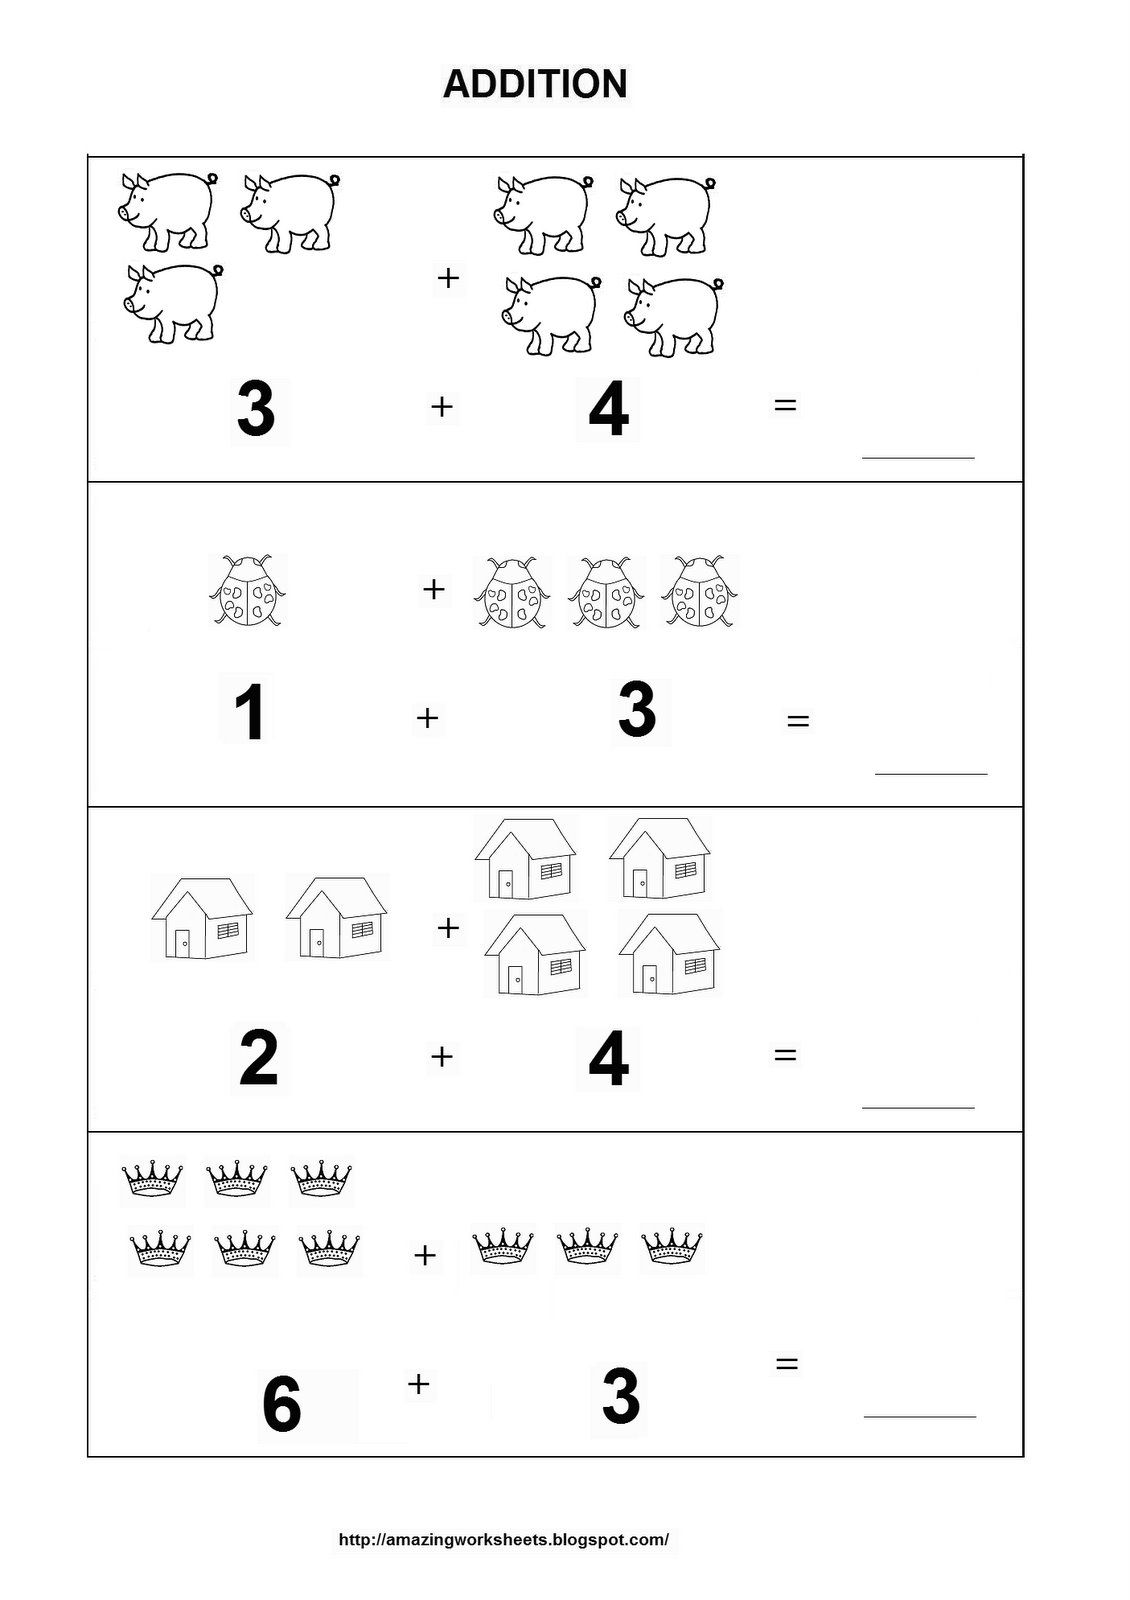 Workbooks homeschooling worksheets for kindergarten : f64bb7d8fe96a17f82504215b27eb25b.jpg (1130×1600) | alpha ...